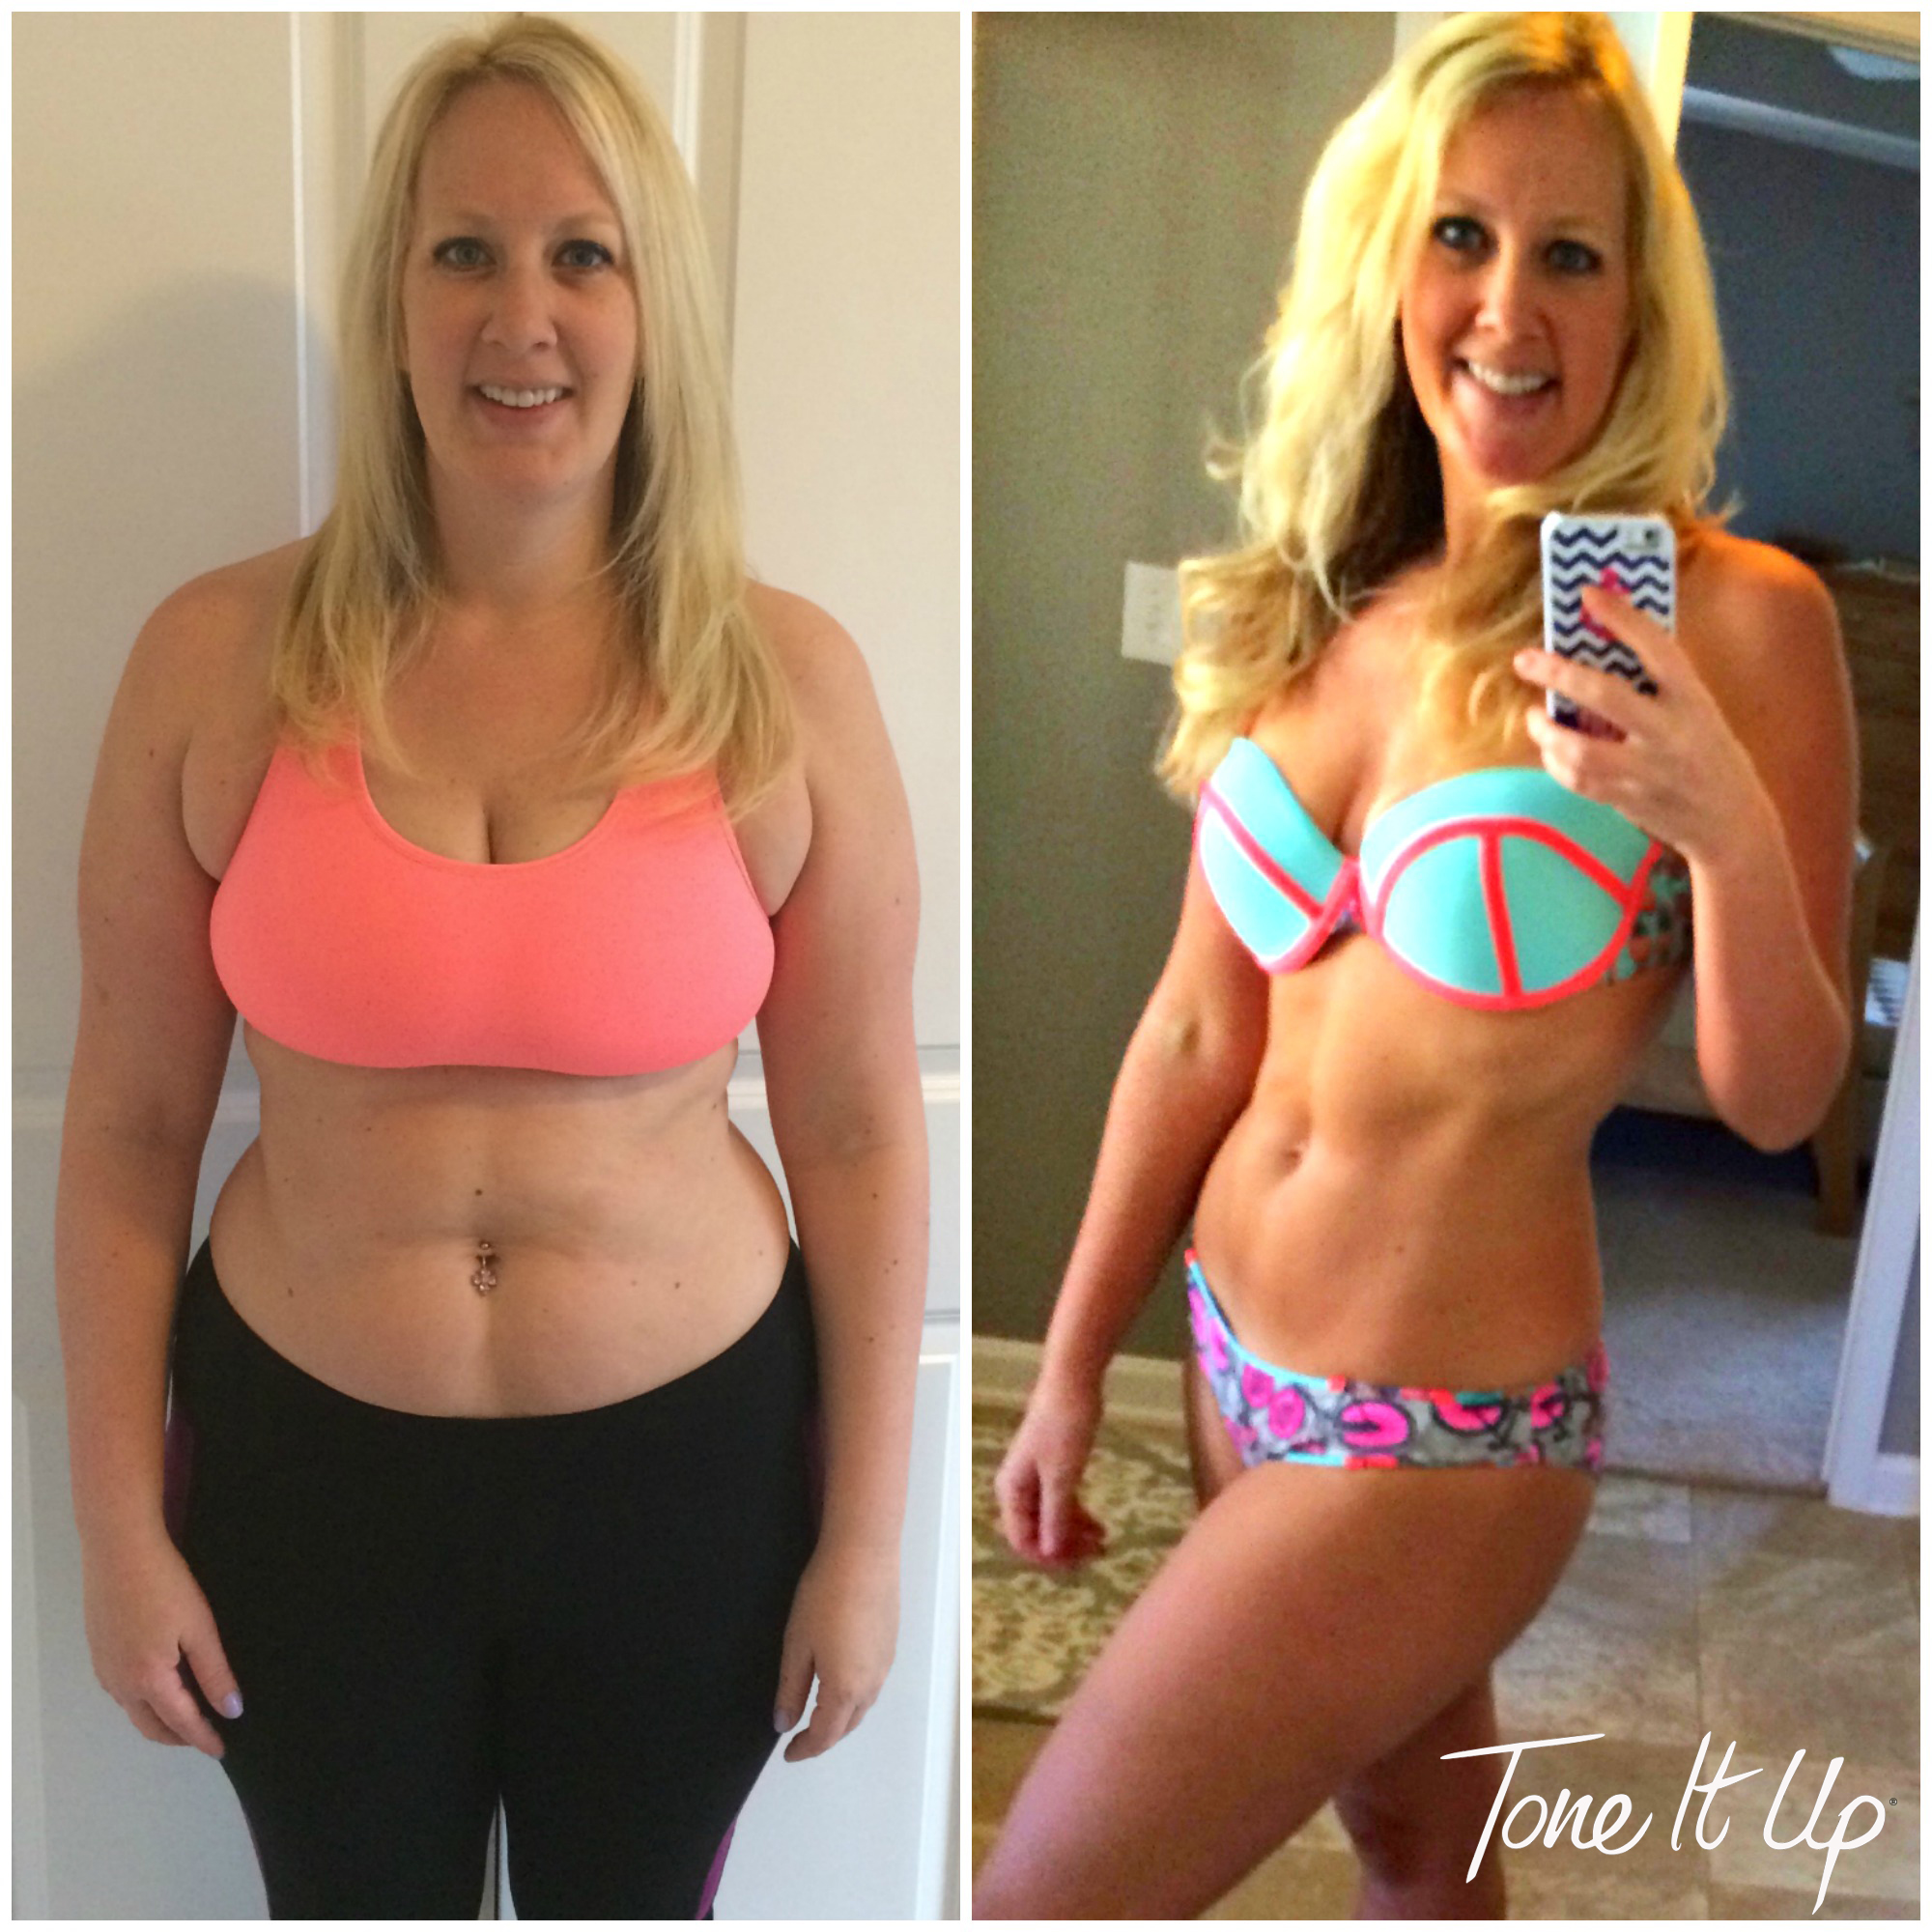 Tone-It-Up-Nutrition-Plan-Review_Laura